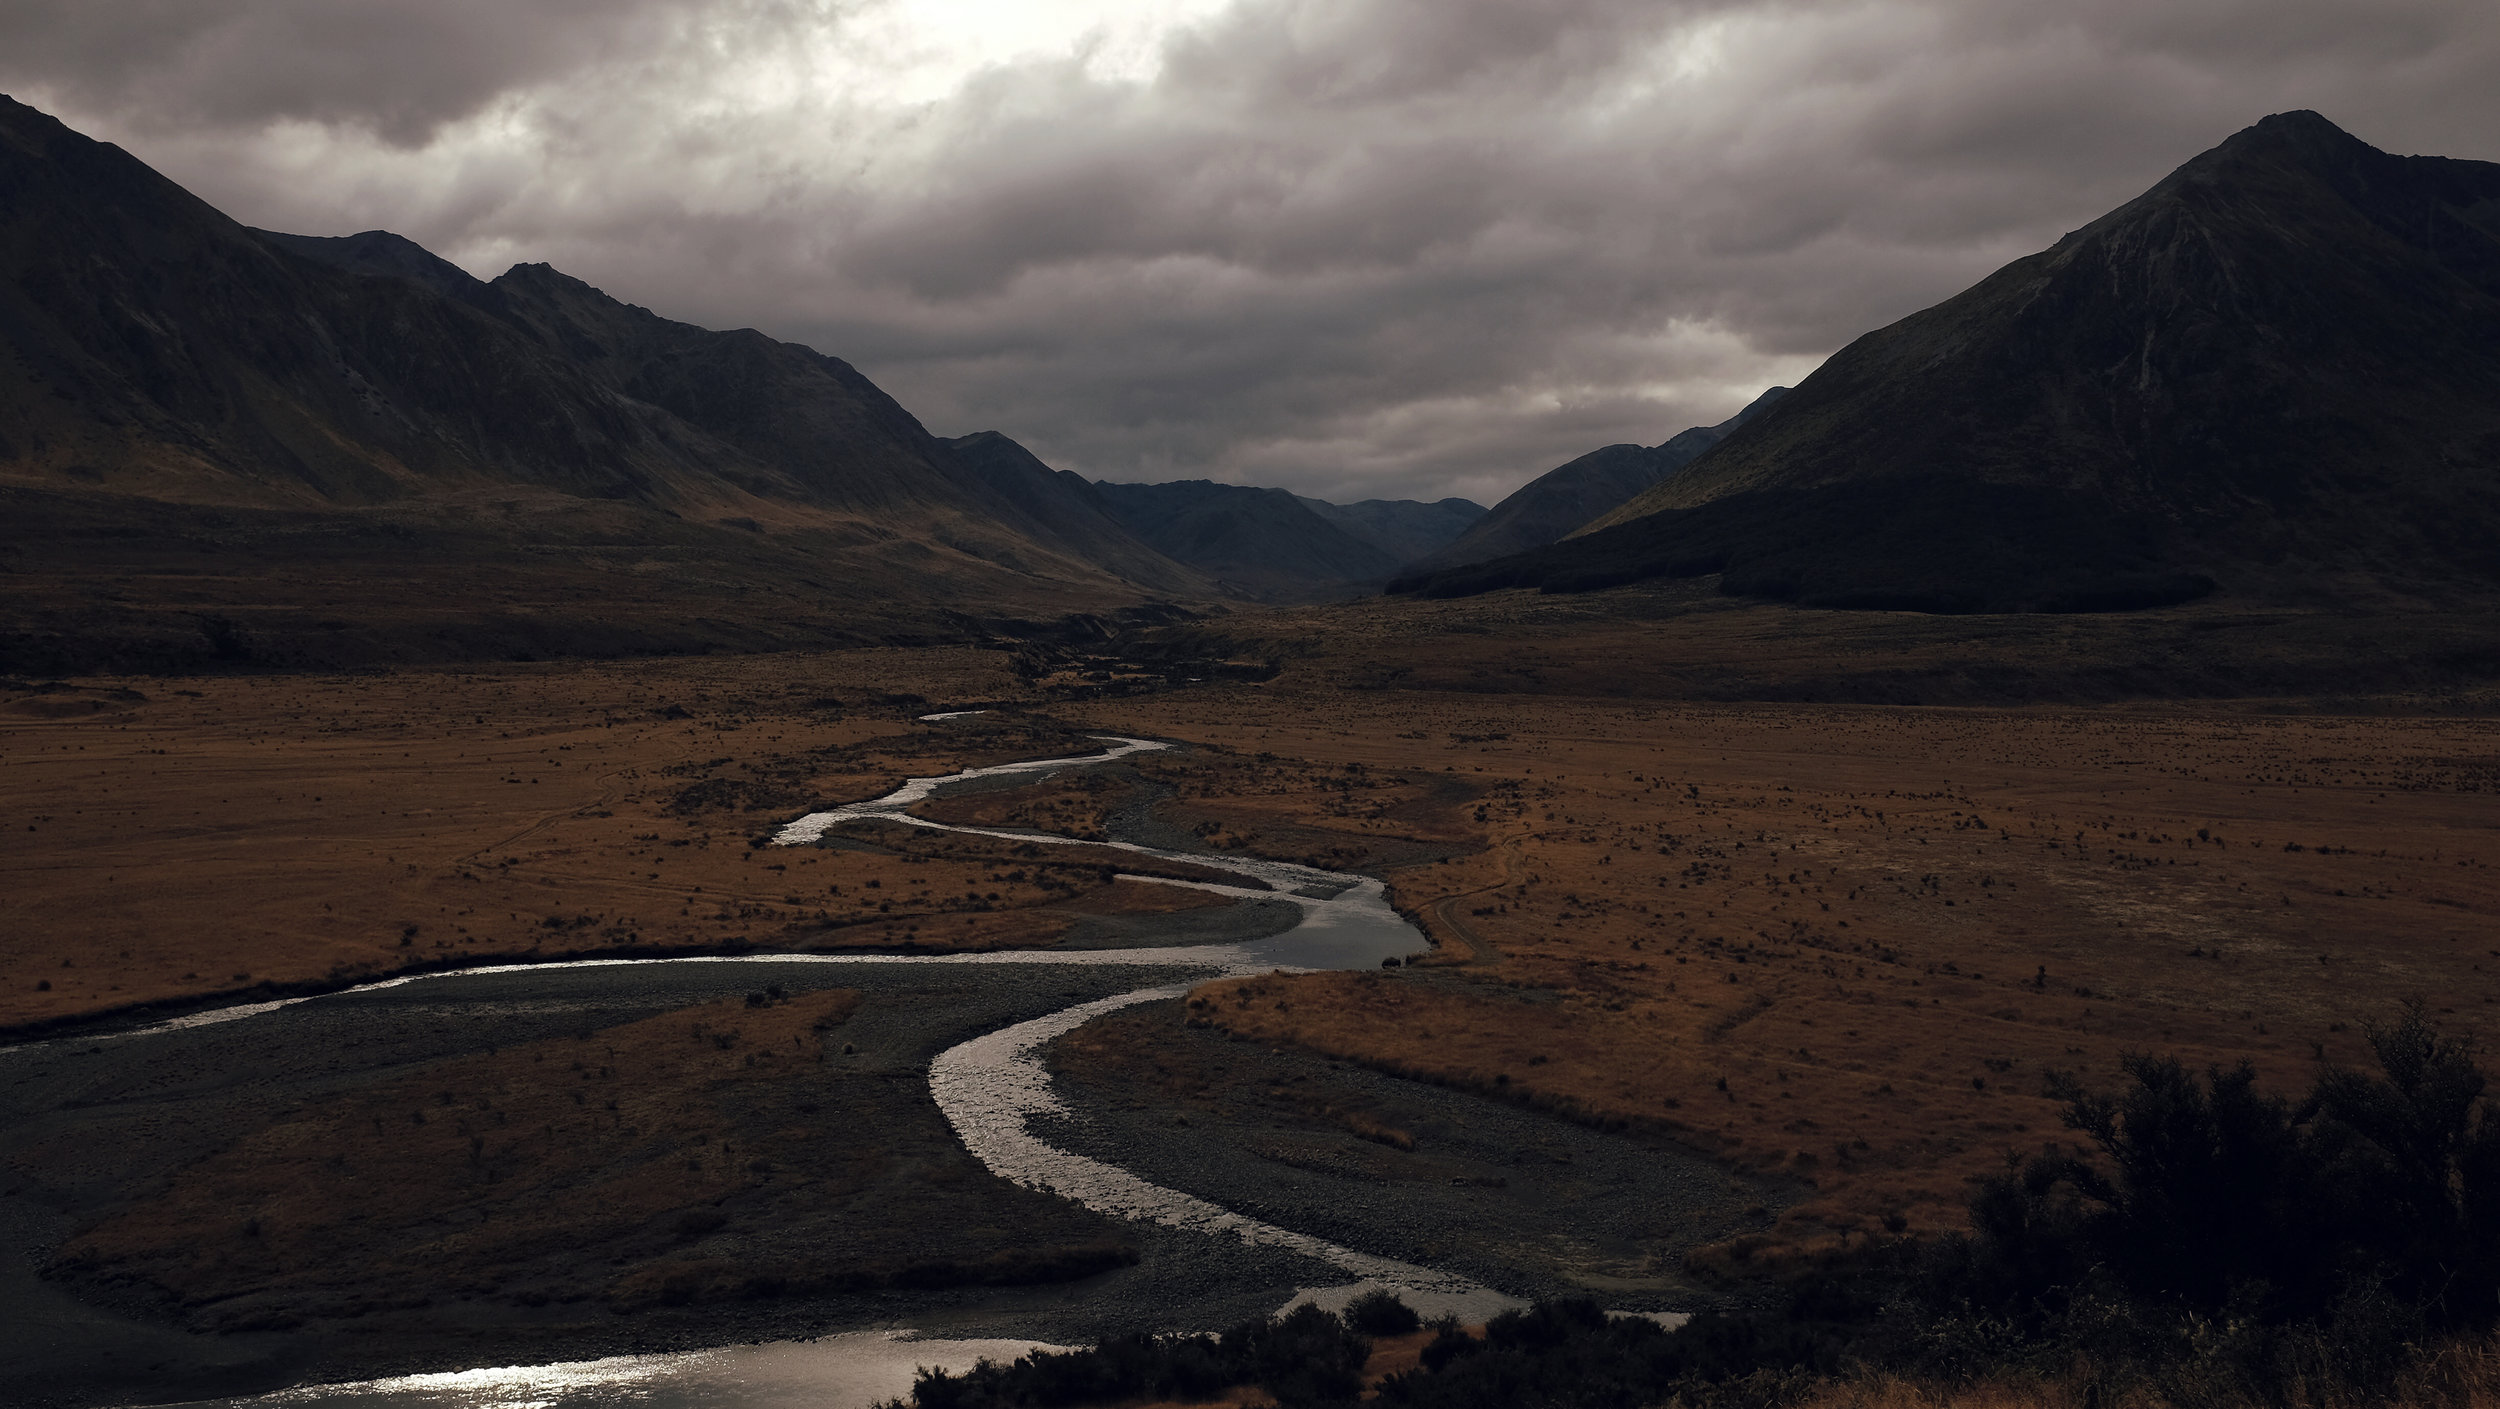 Waters from Fiordland come to feed the Mavora Lakes.